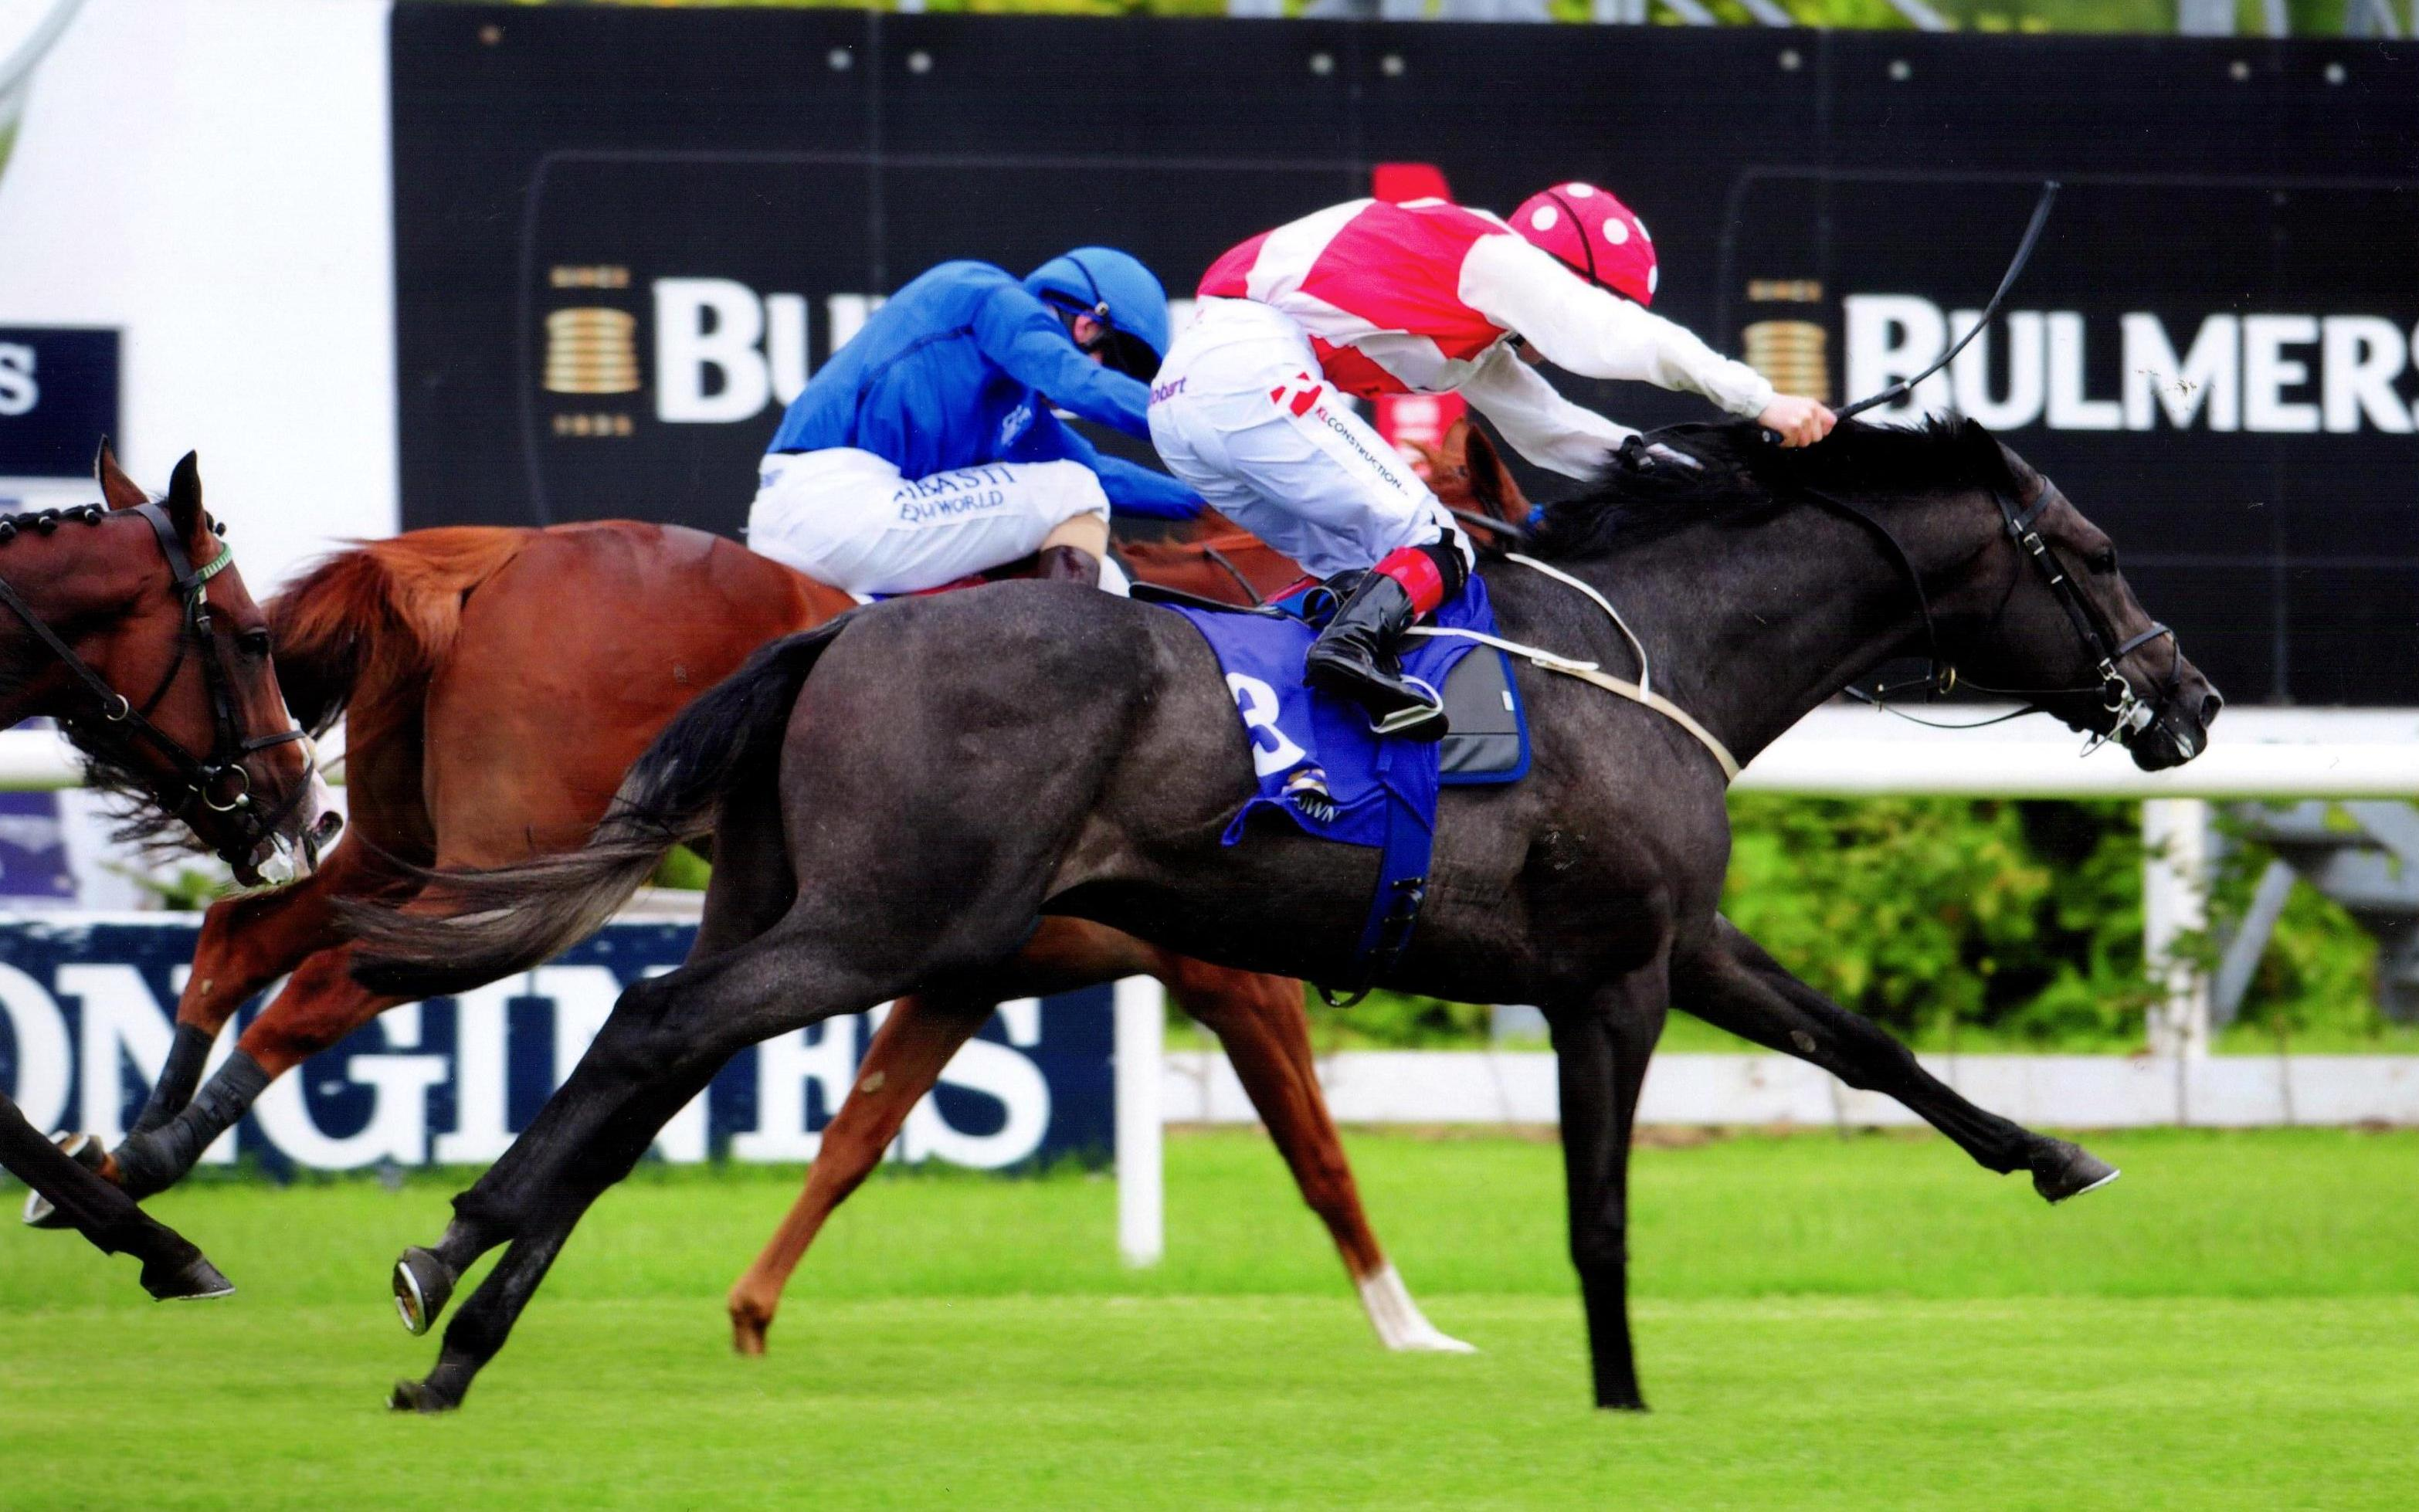 LETHAL STEPS shows his gears at Leopardstown for owner Jimmy Murphy Leopardstown 16th June 2017